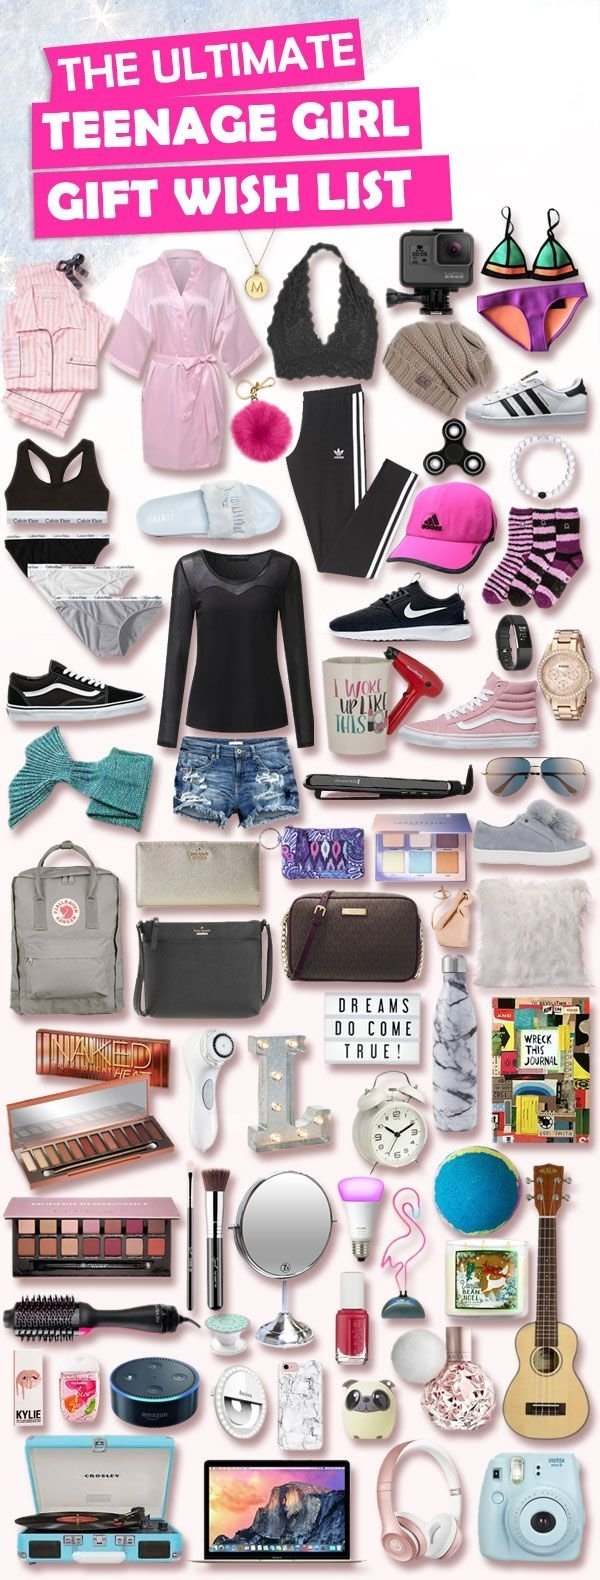 10 Spectacular Birthday Present Ideas For Teenage Girls christmas gifts for teenage girls list christmas gifts goal and 2021